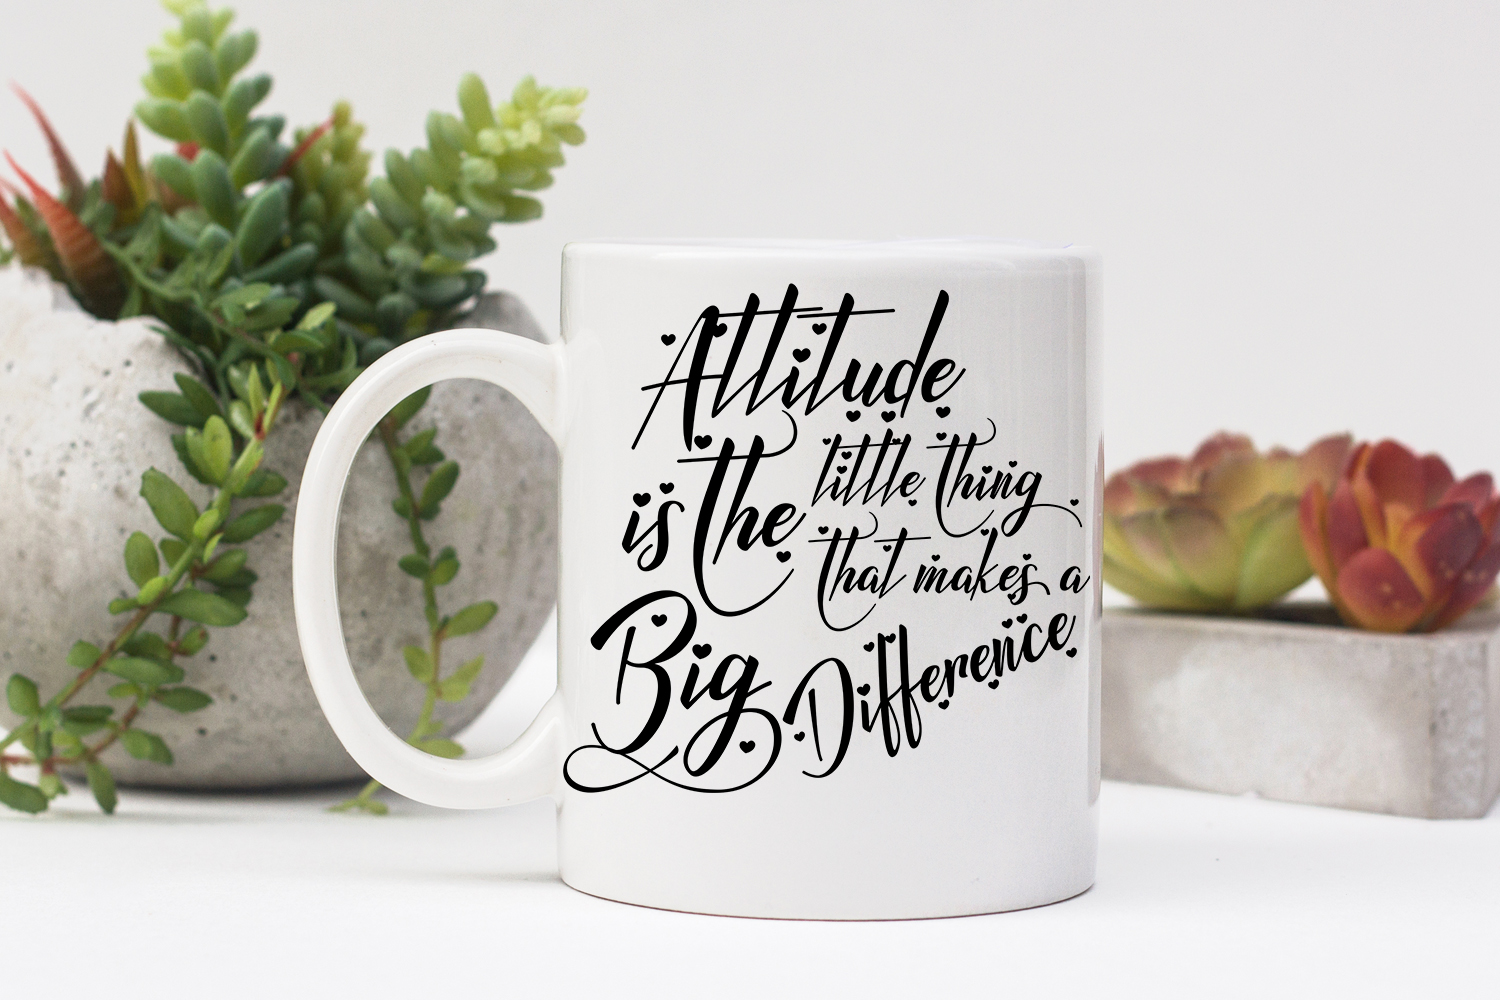 Inspirational Quote - Attitude is the Little Thing that Makes a Big Difference example image 4